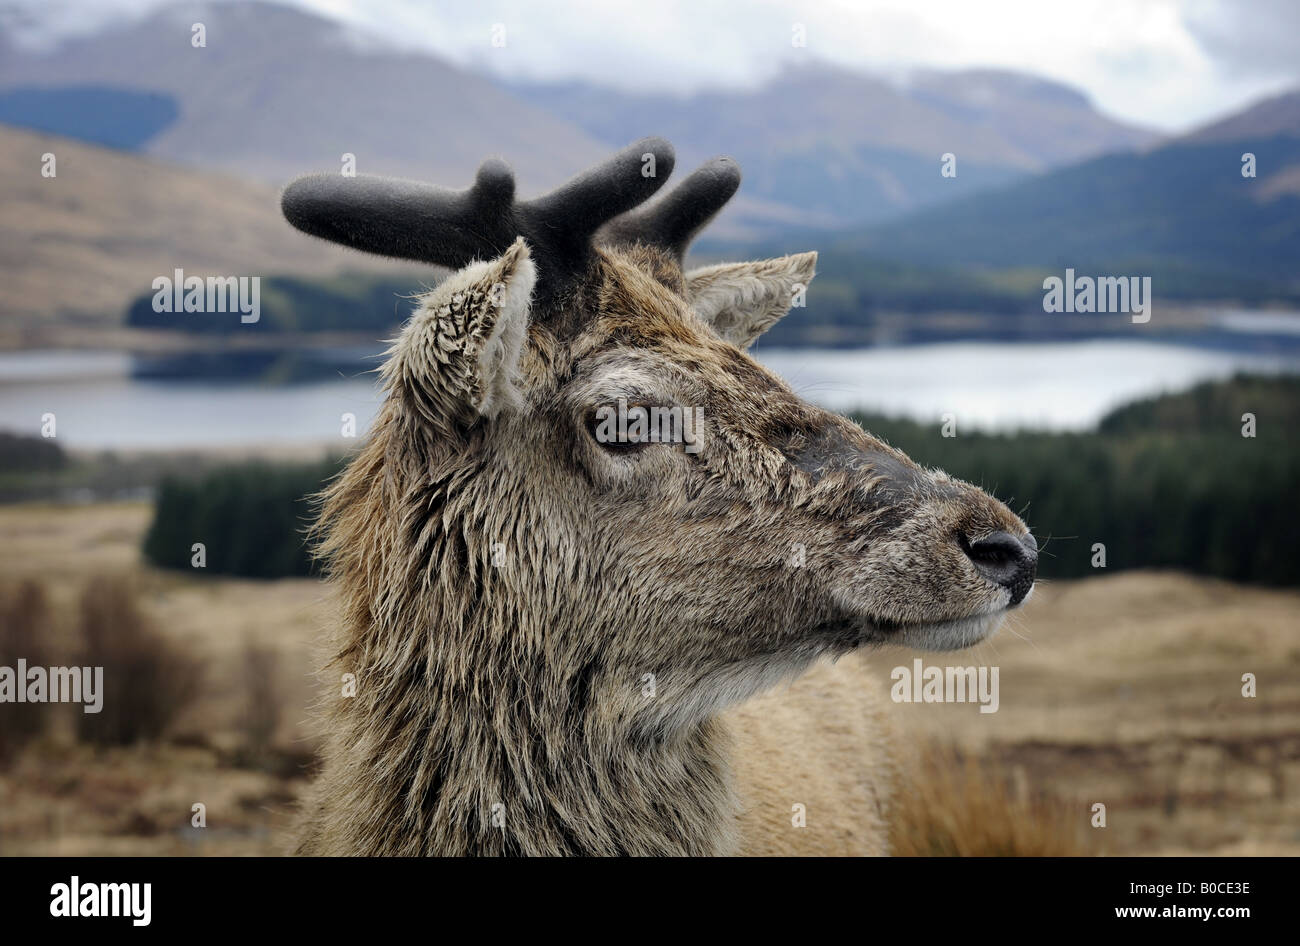 A SCOTTISH NATIVE DEER PICTURED IN THE HIGHLANDS OF SCOTLAND NEAR GLENCOE,UK. - Stock Image